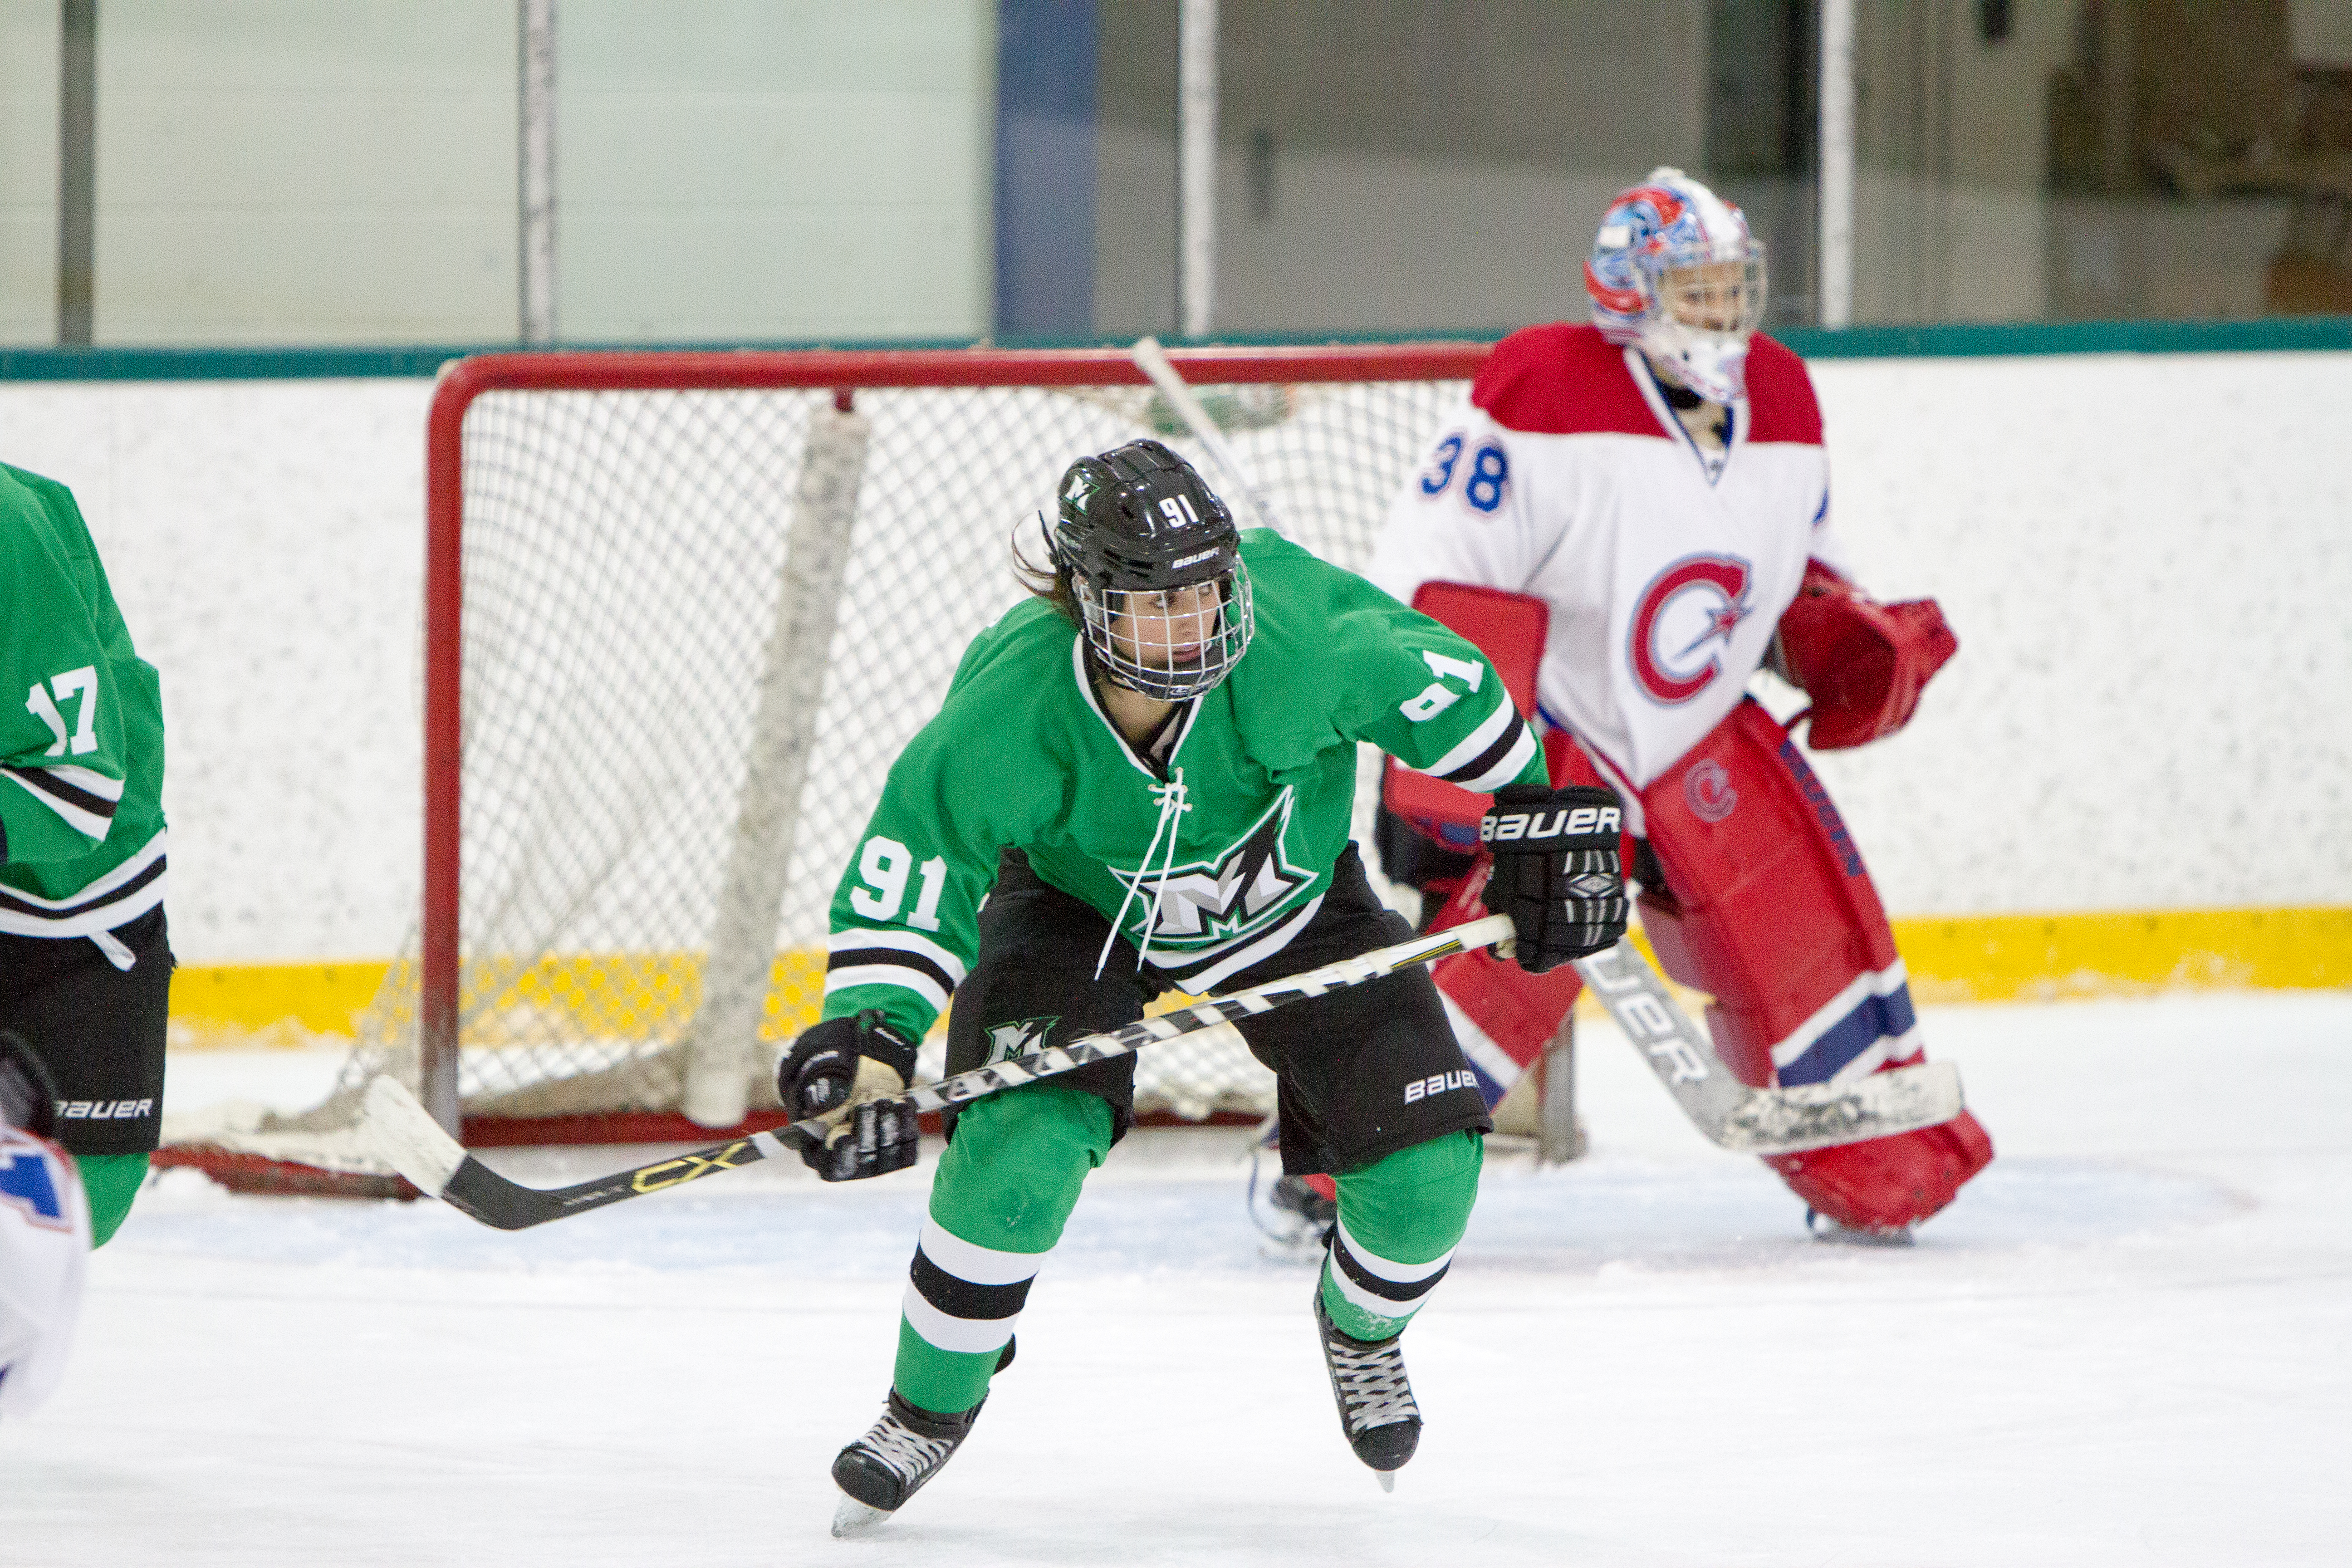 Jenna McParland of the Markham Thunder posed in front of the Montreal goal with goalie Emerance Maschmeyer in the background.